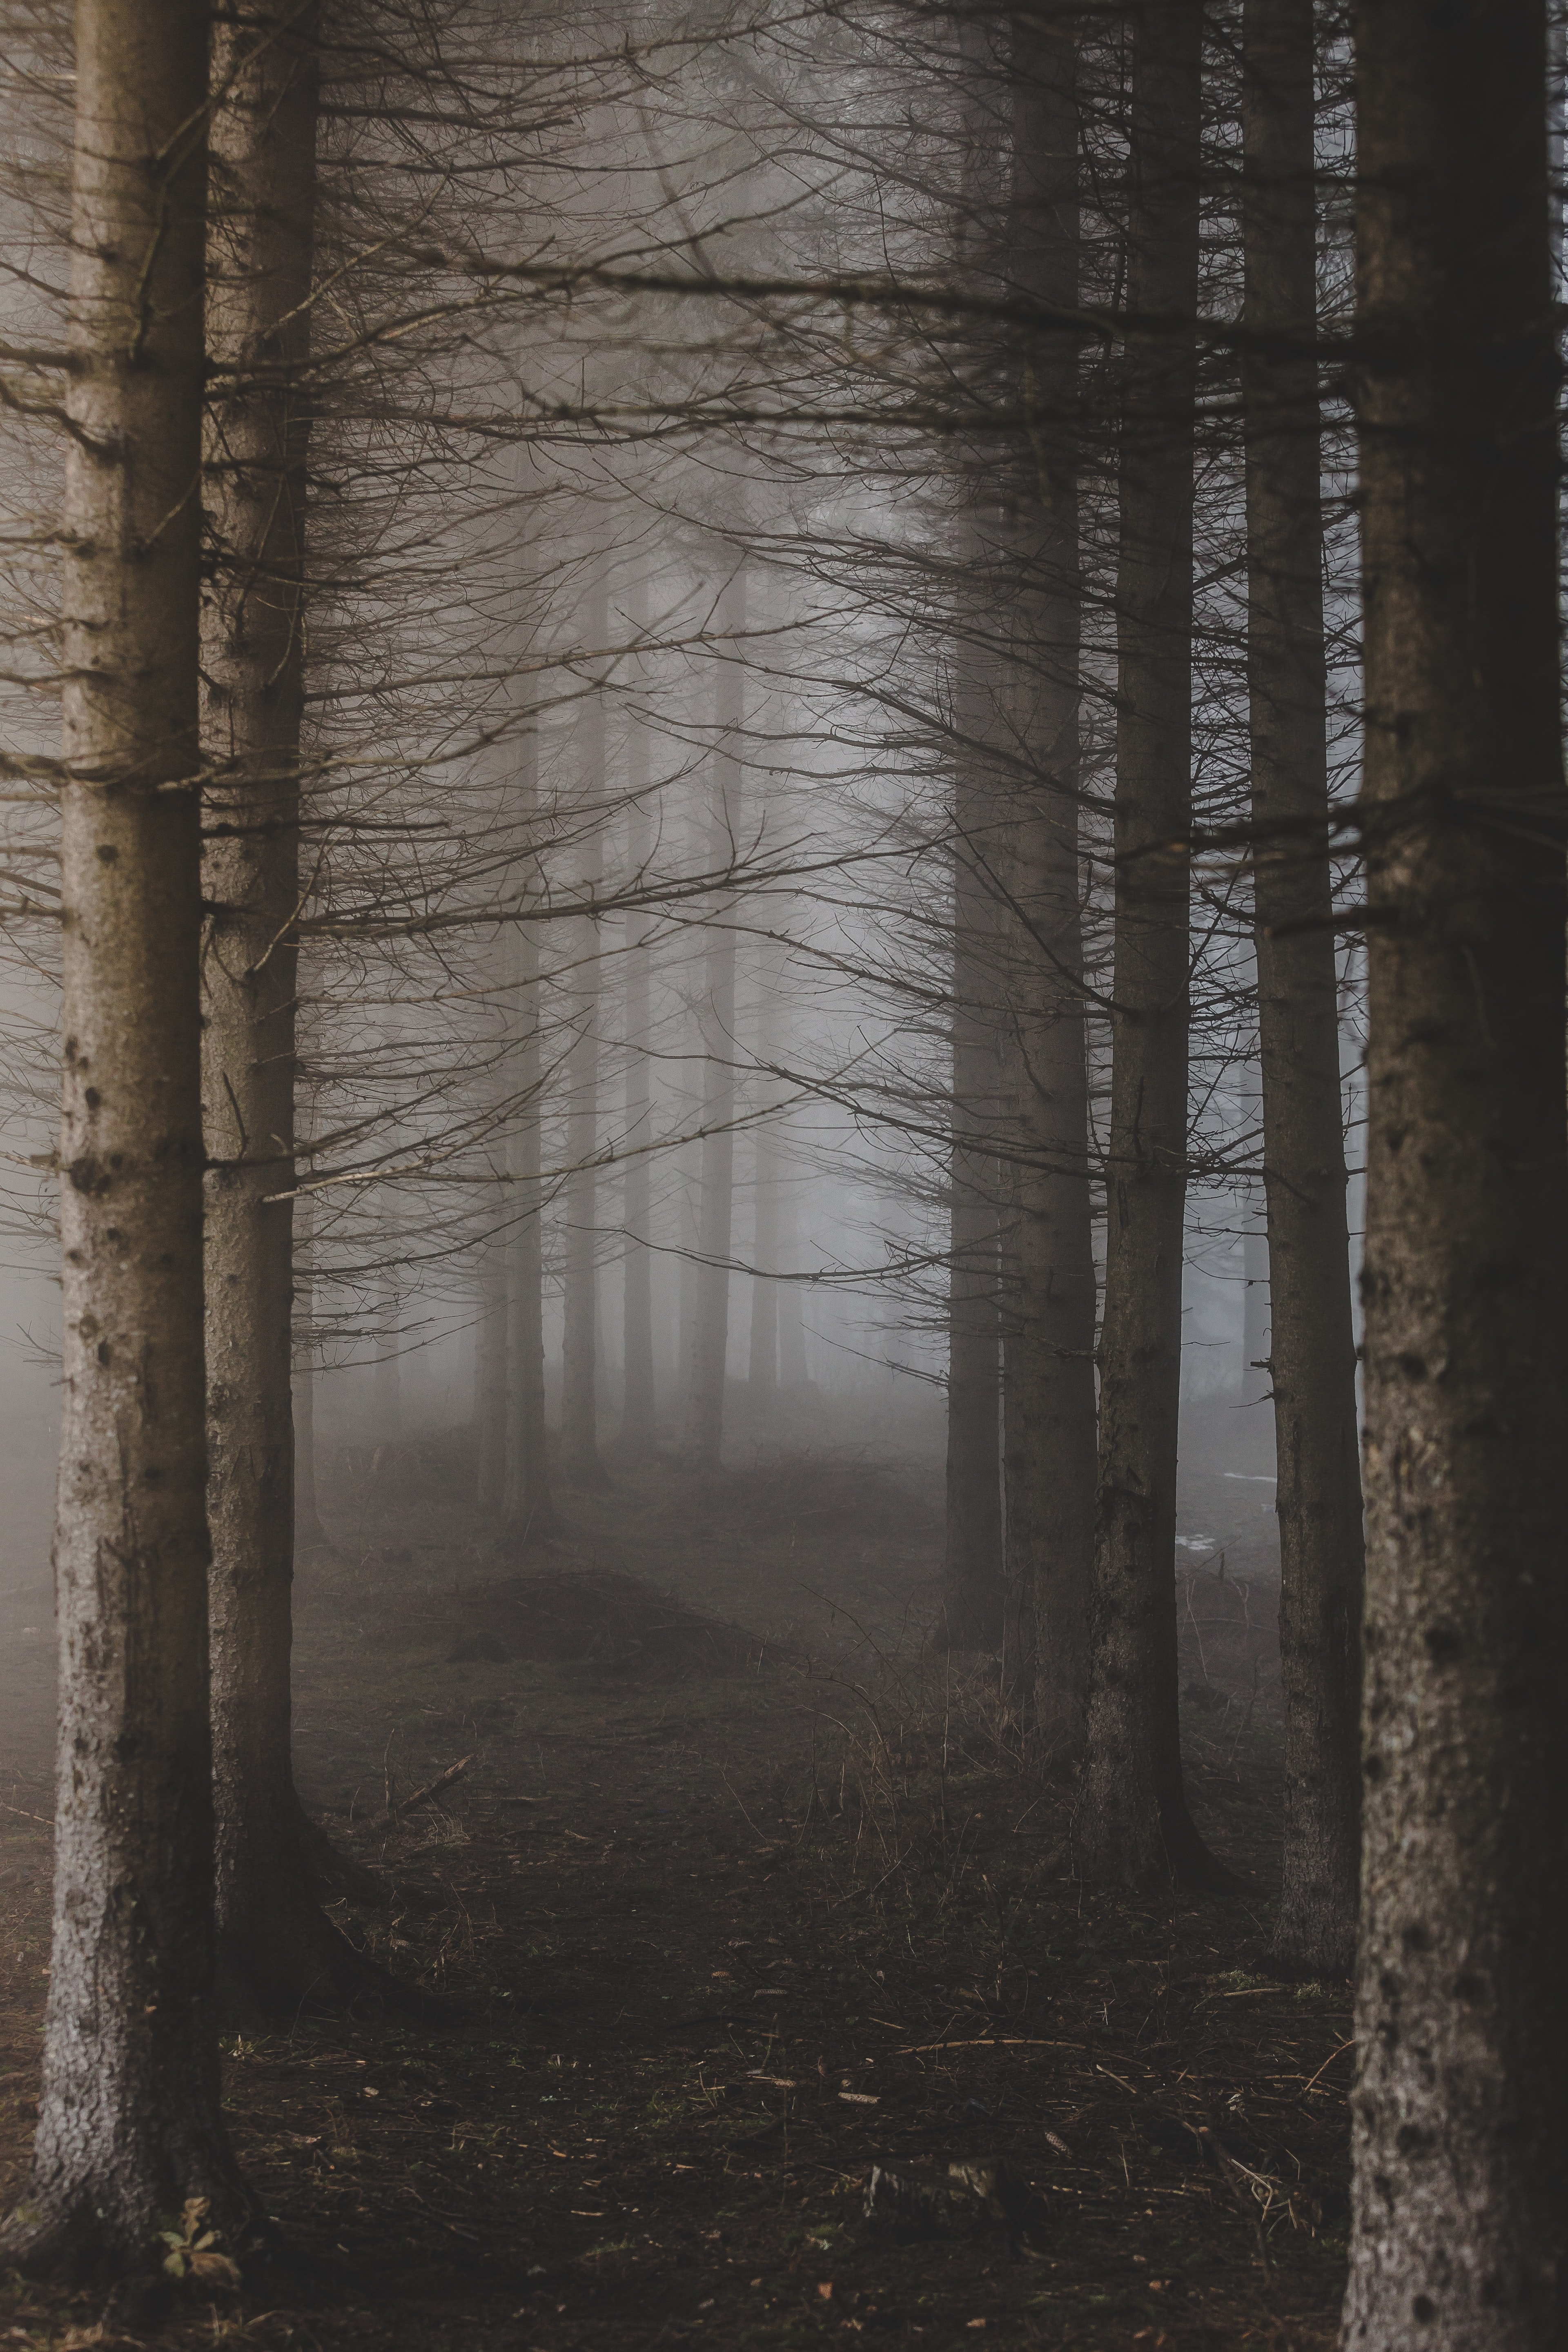 A pale shot of a misty forest path